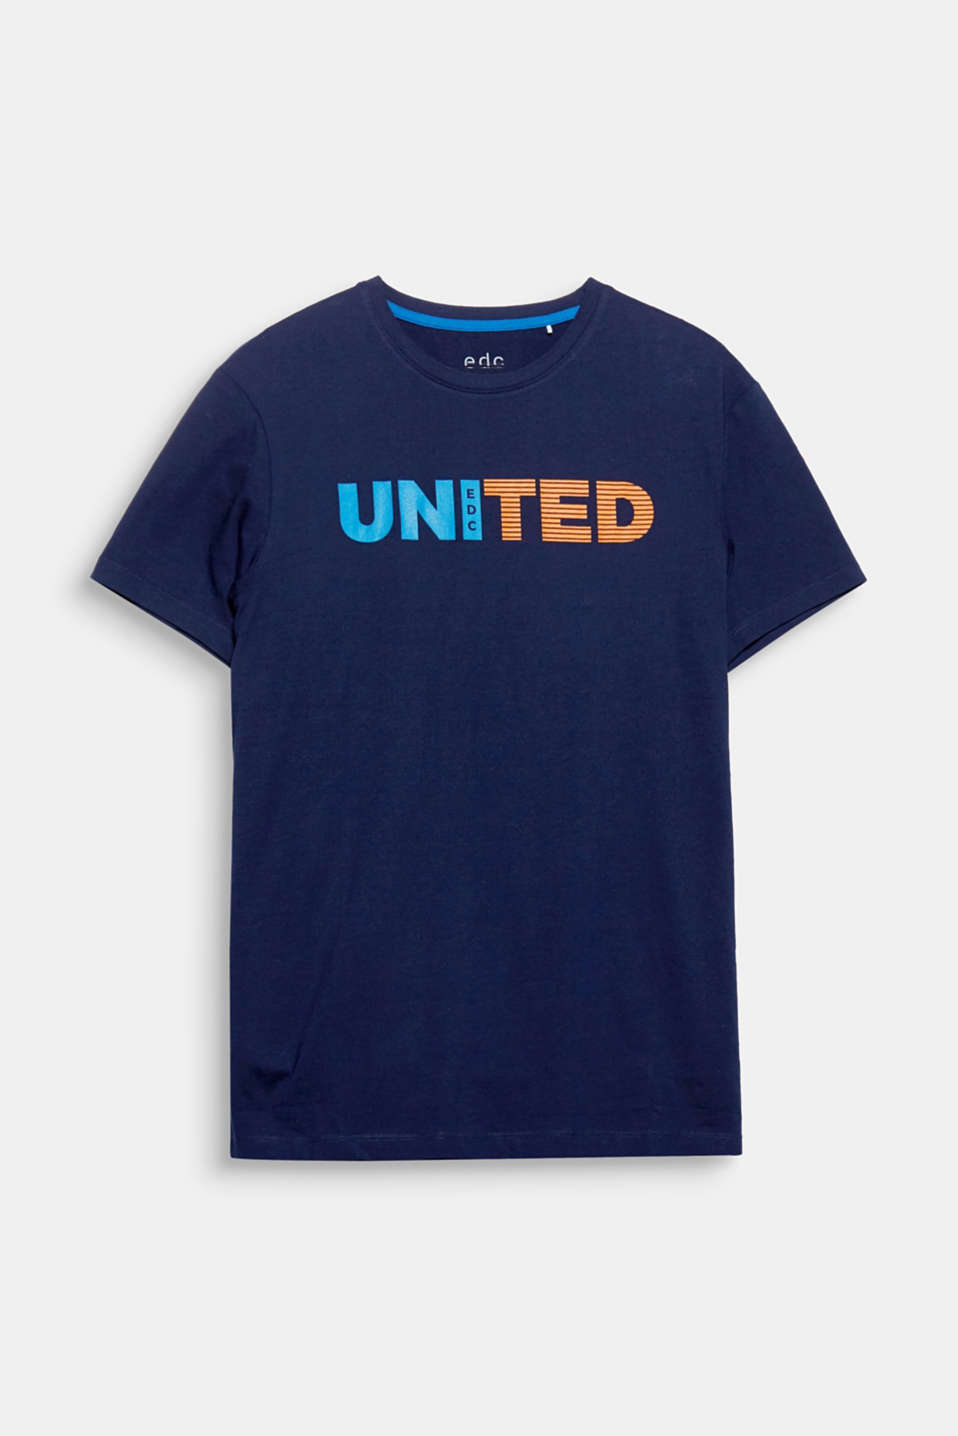 United! A print and bold statement in one: pure cotton T-shirt.